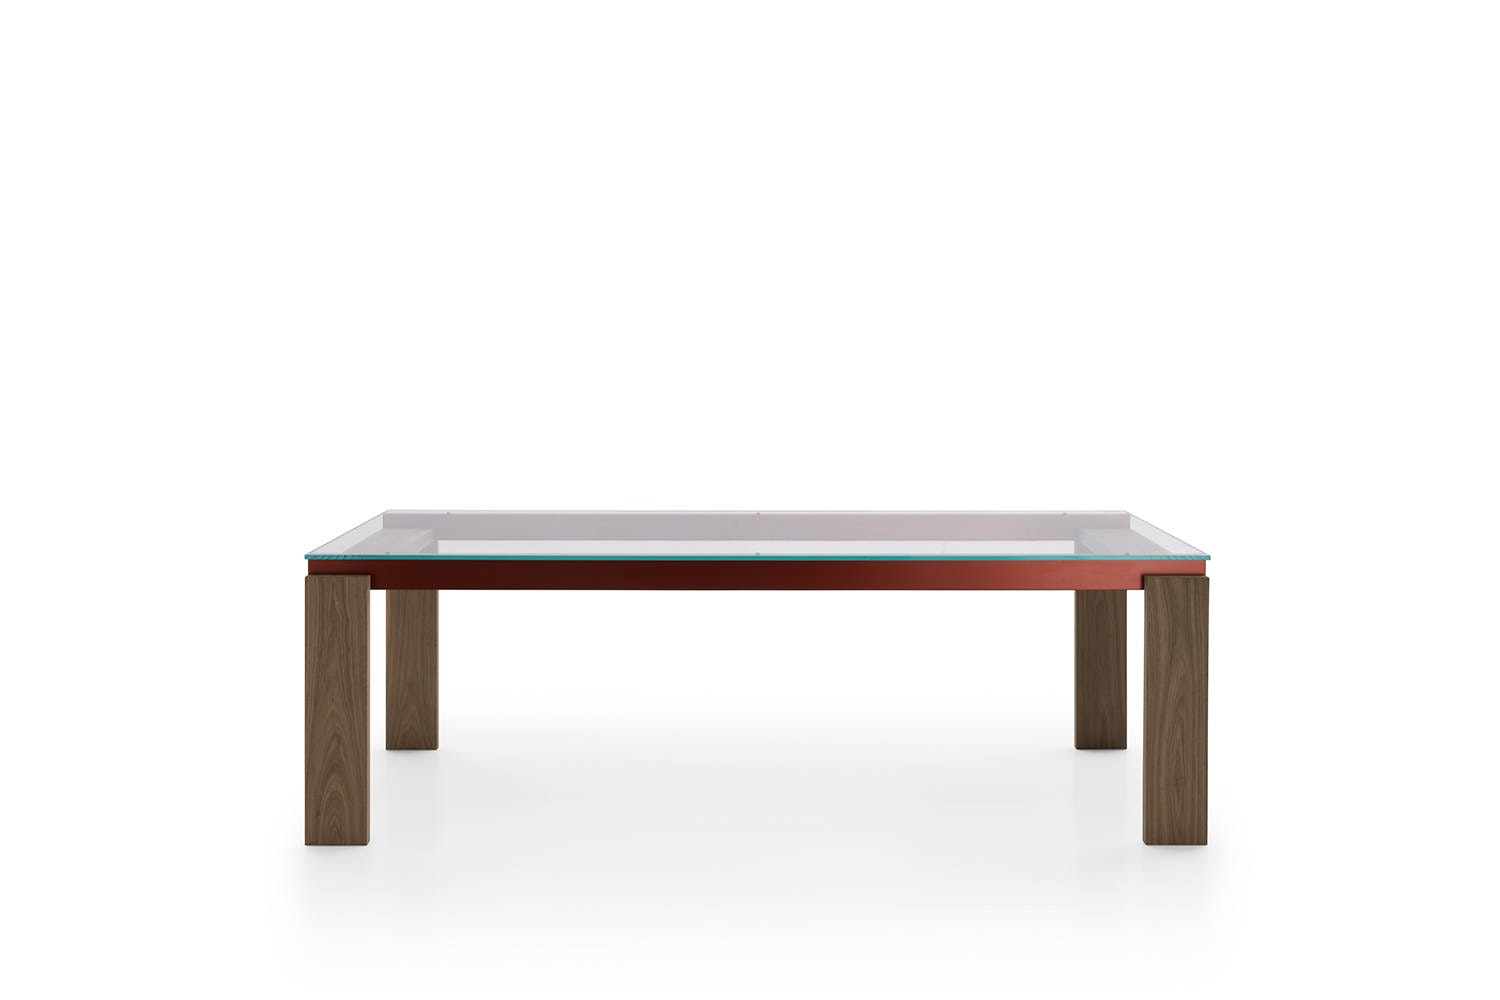 Parallel Structure Table by Michael Anastassiades for B&B Italia